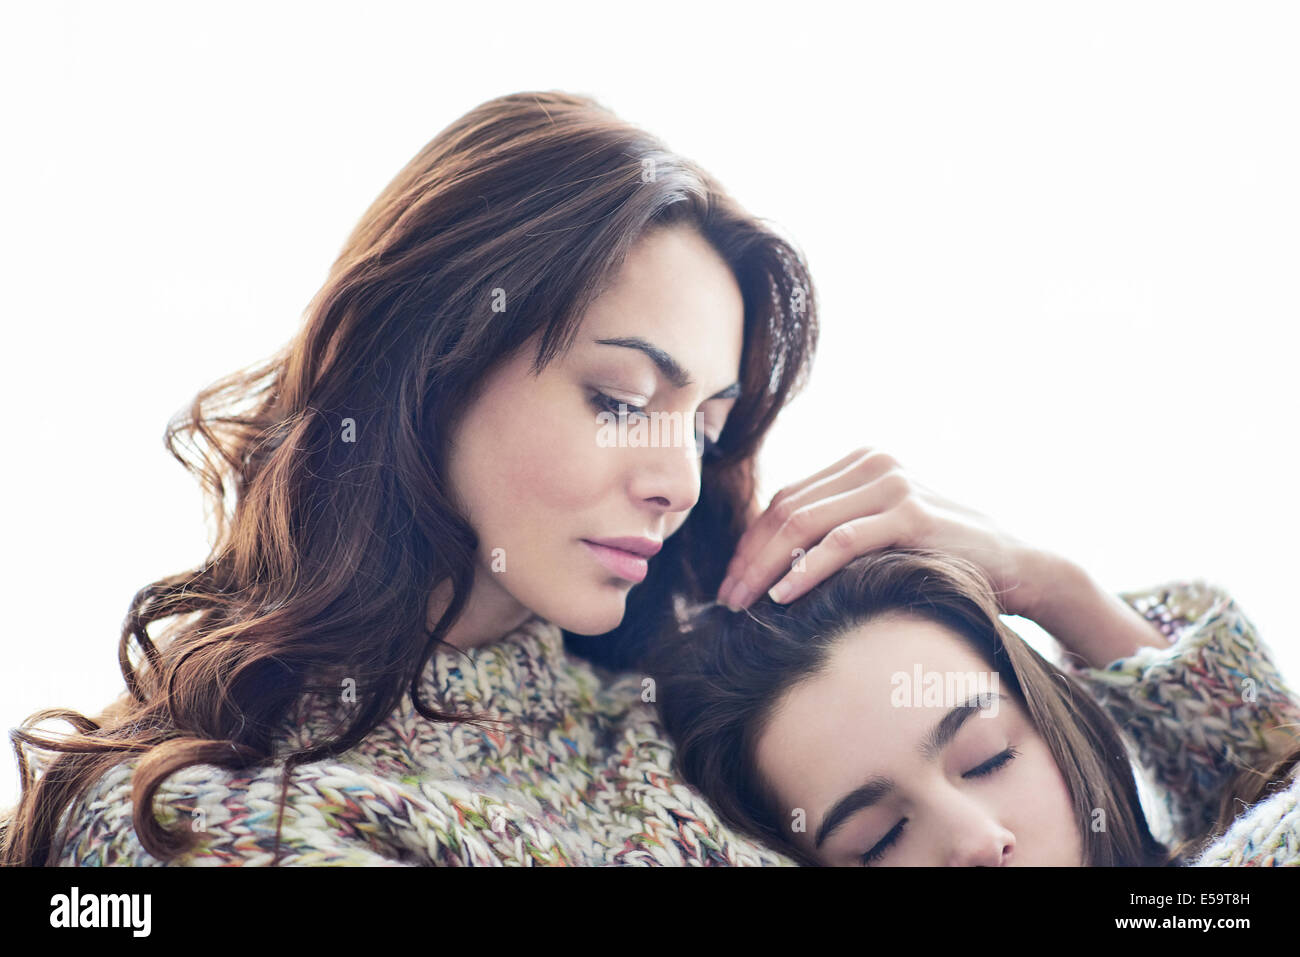 Mother and child Photo Stock